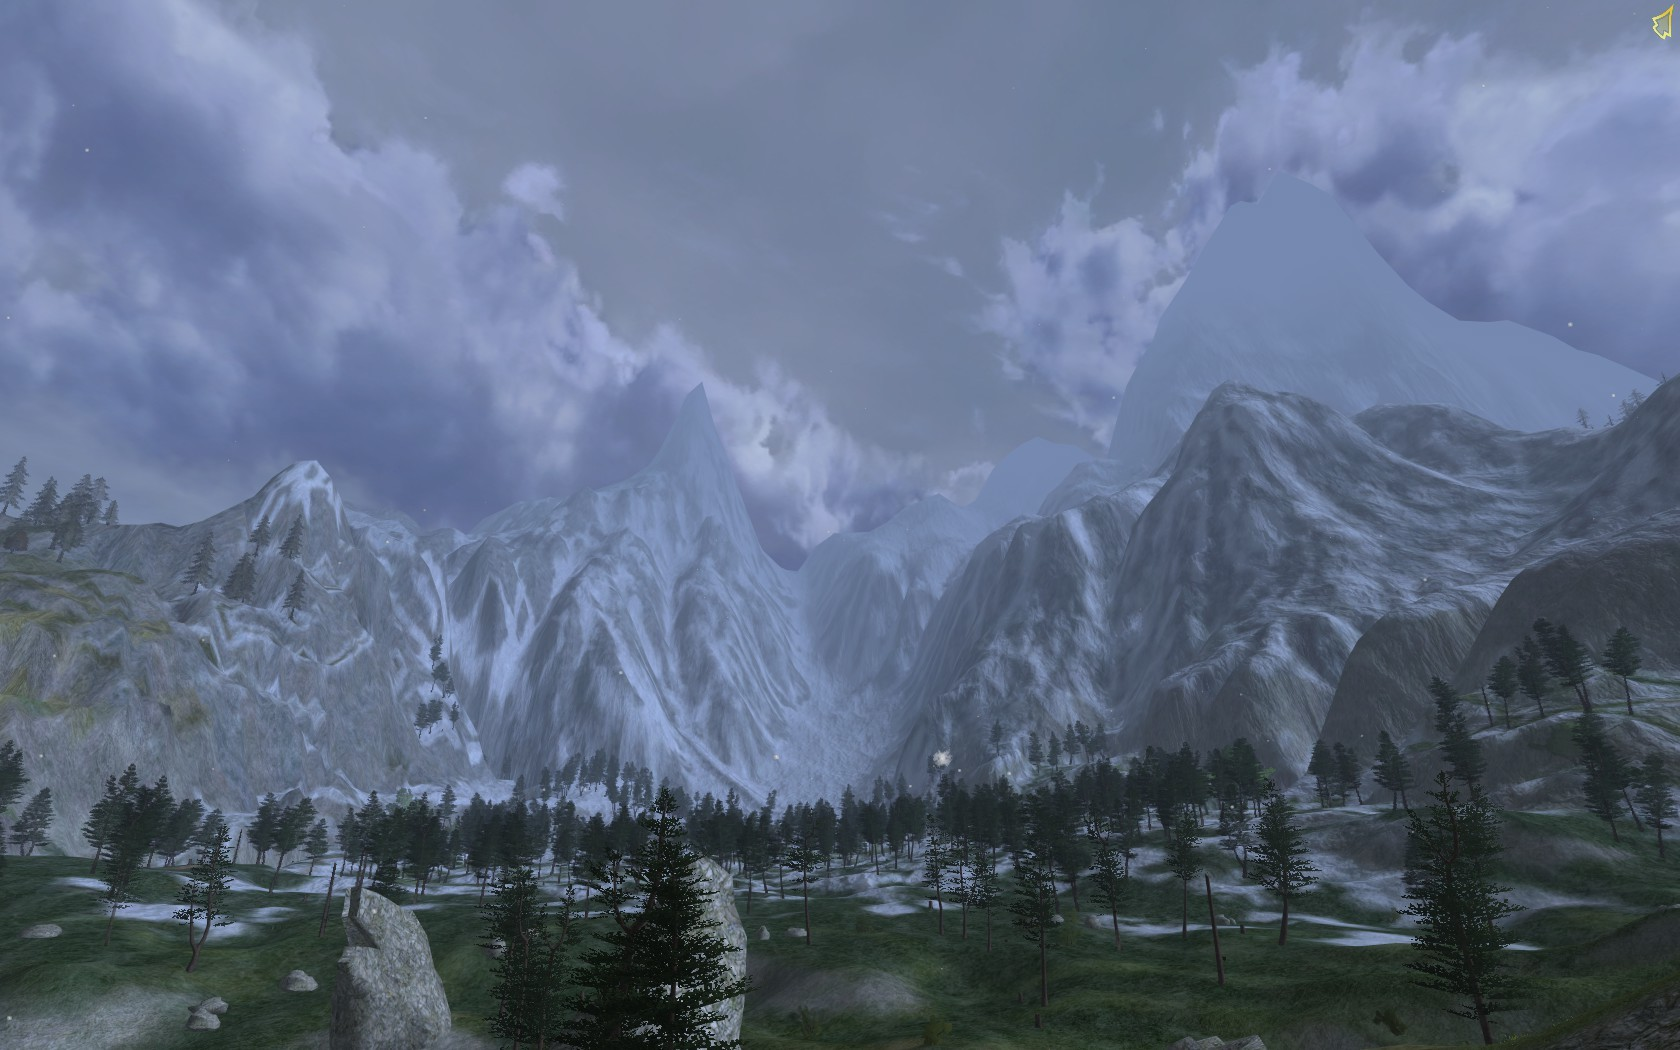 Lord of the Rings Online - Thror's Coomb. Home to the dragon, Draigoch.